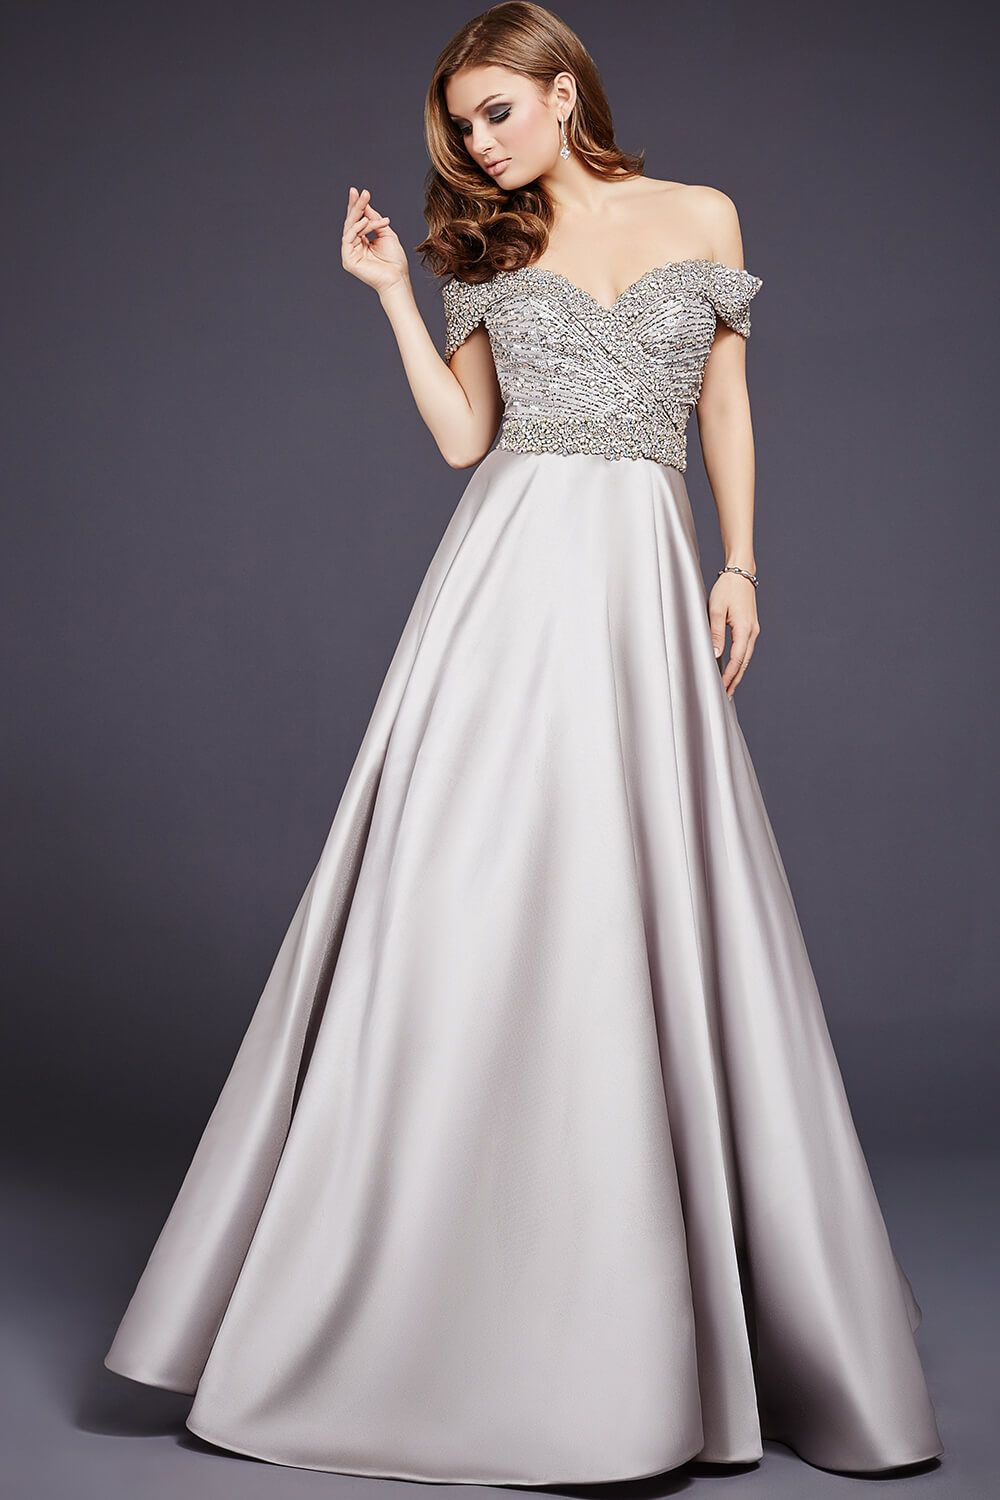 Off-the-Shoulder Evening Gown with Sweetheart Neckline - Ever ...